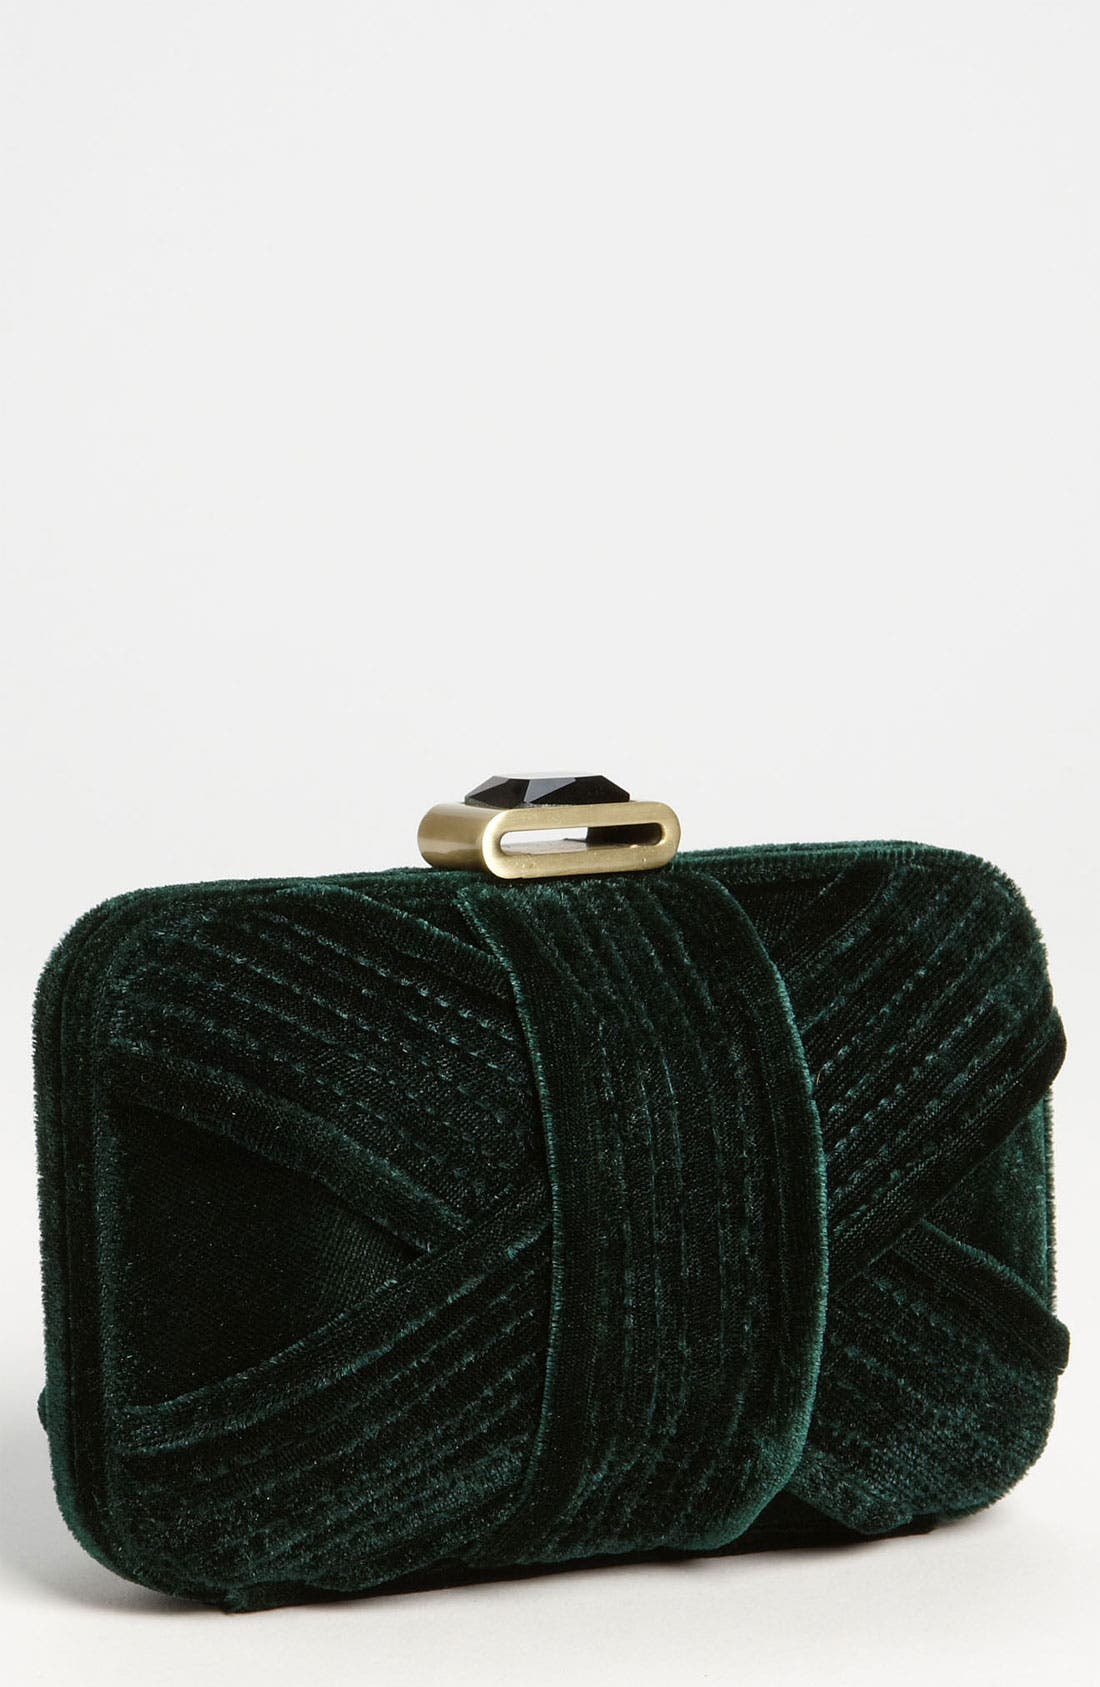 Alternate Image 1 Selected - Glint Velvet Minaudiere Box Clutch